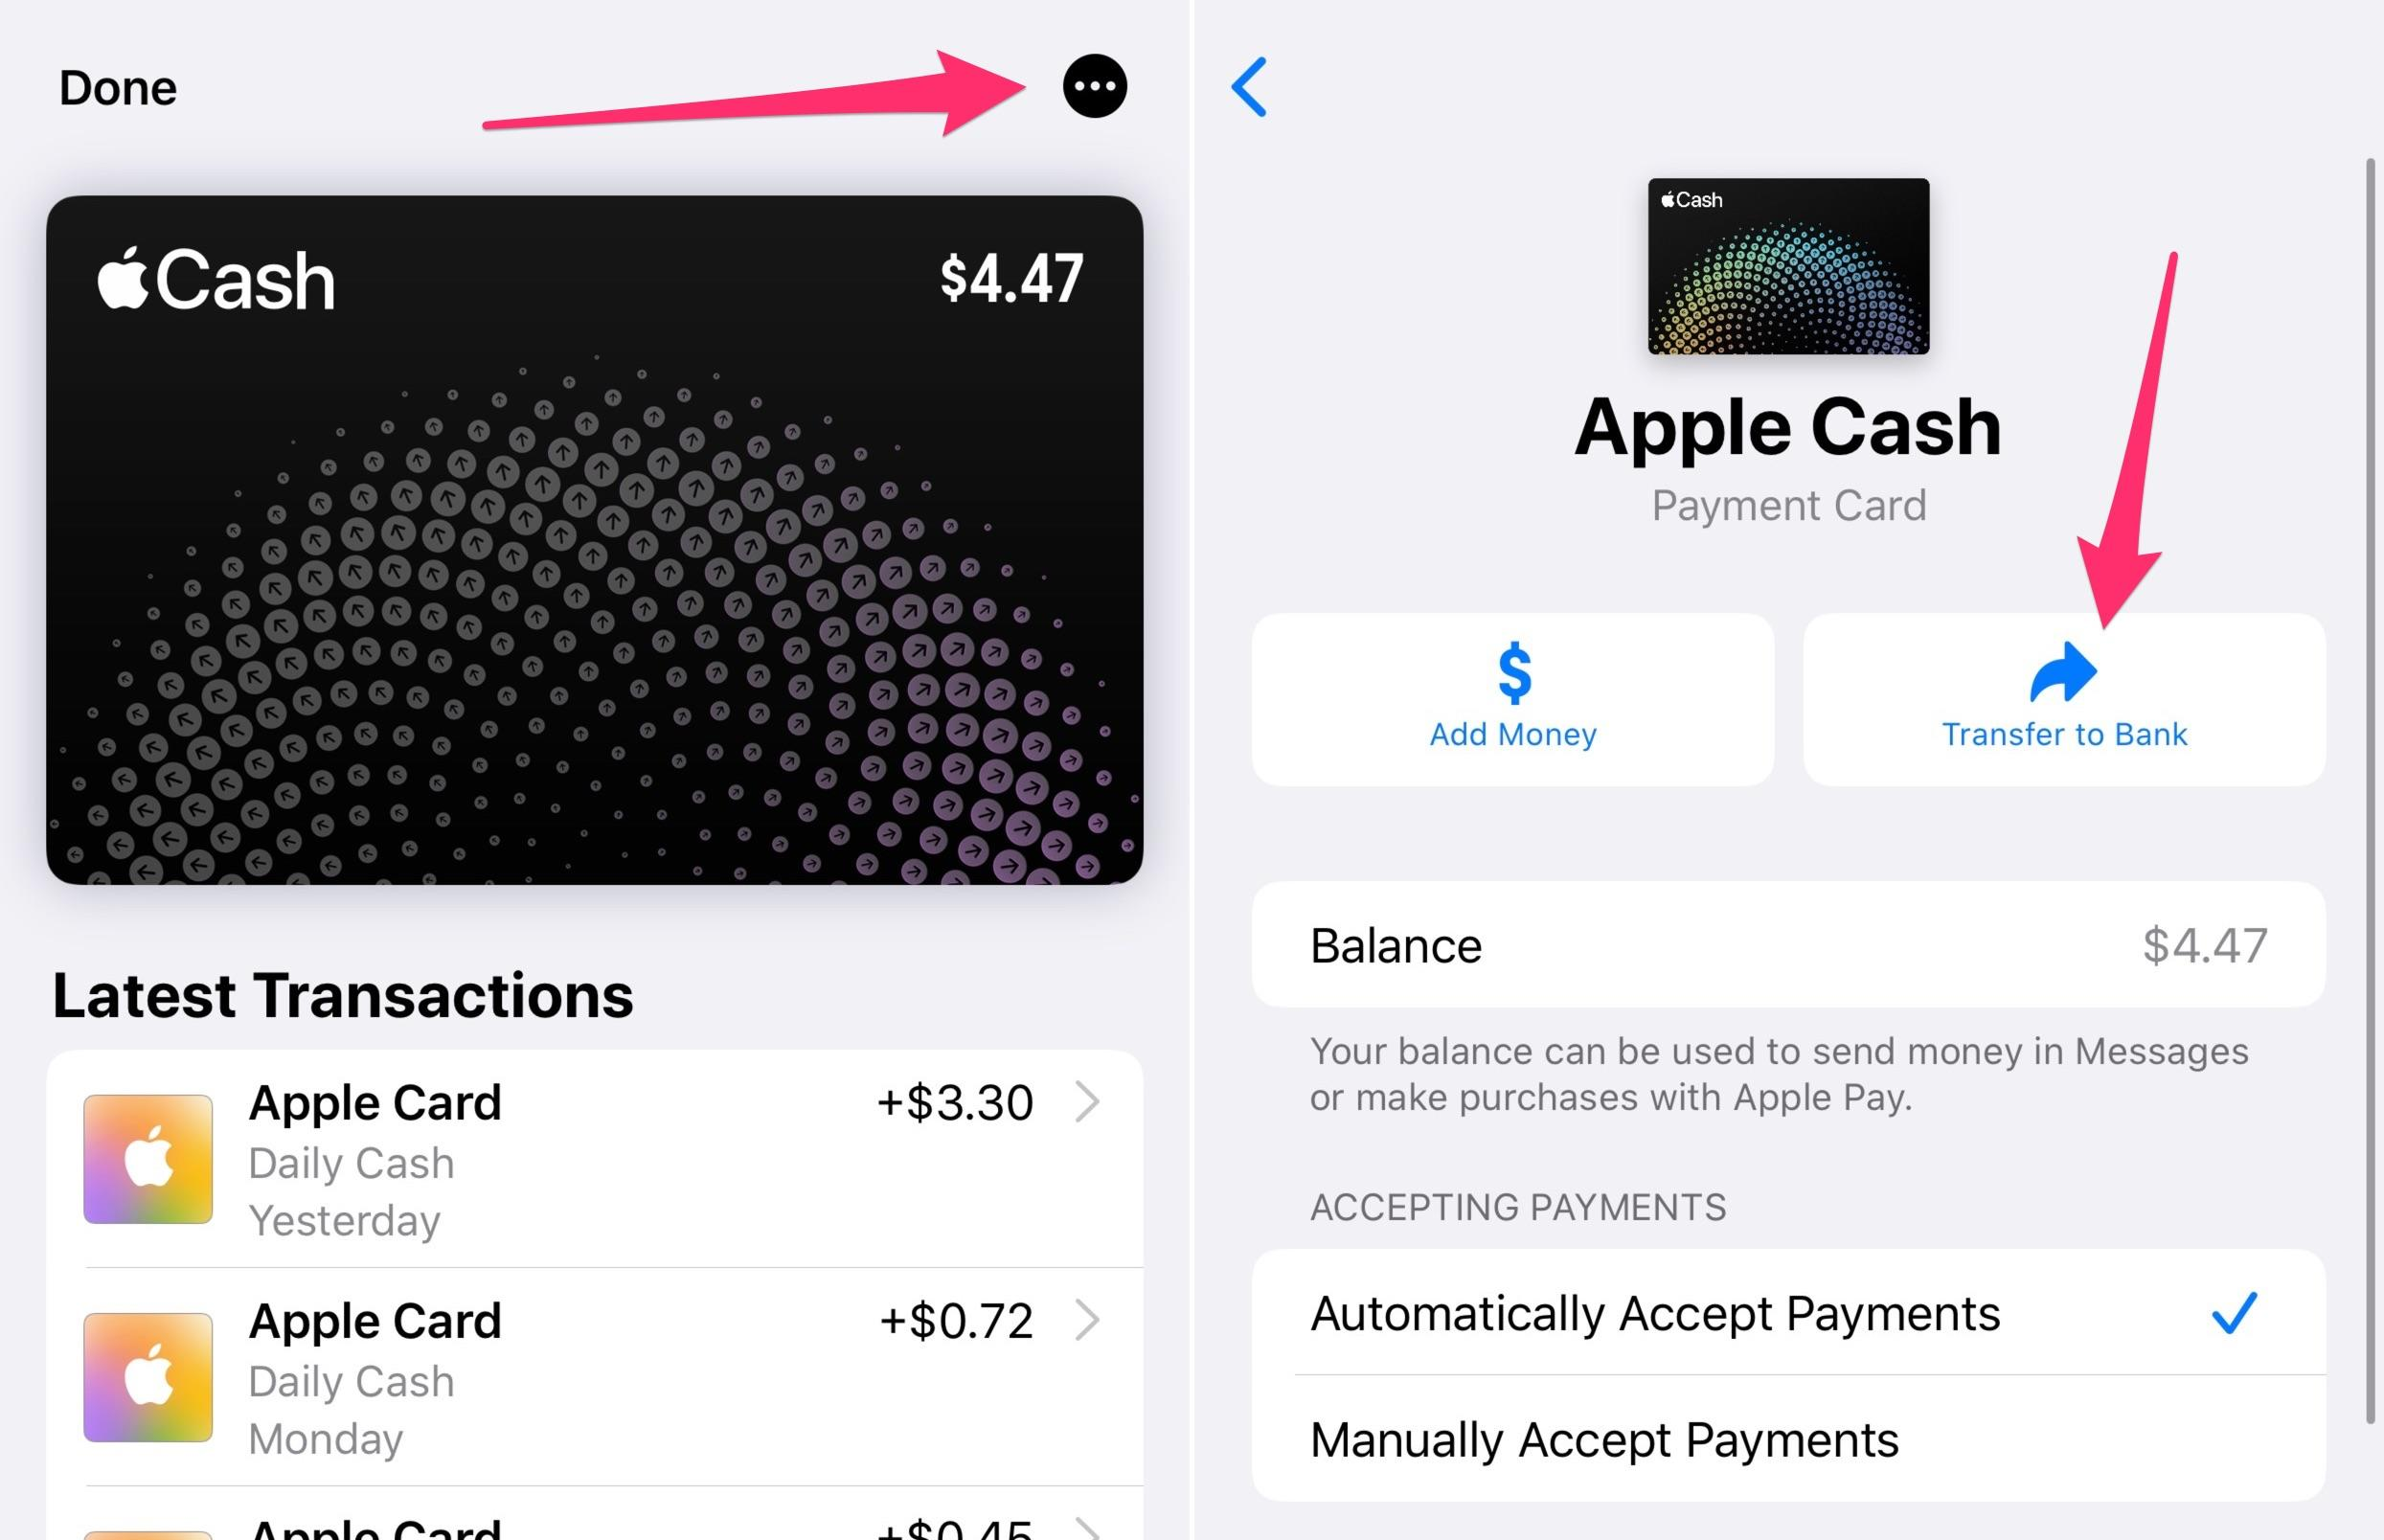 10 ways to spend the Apple Cash you earn from your Apple Card - CNET